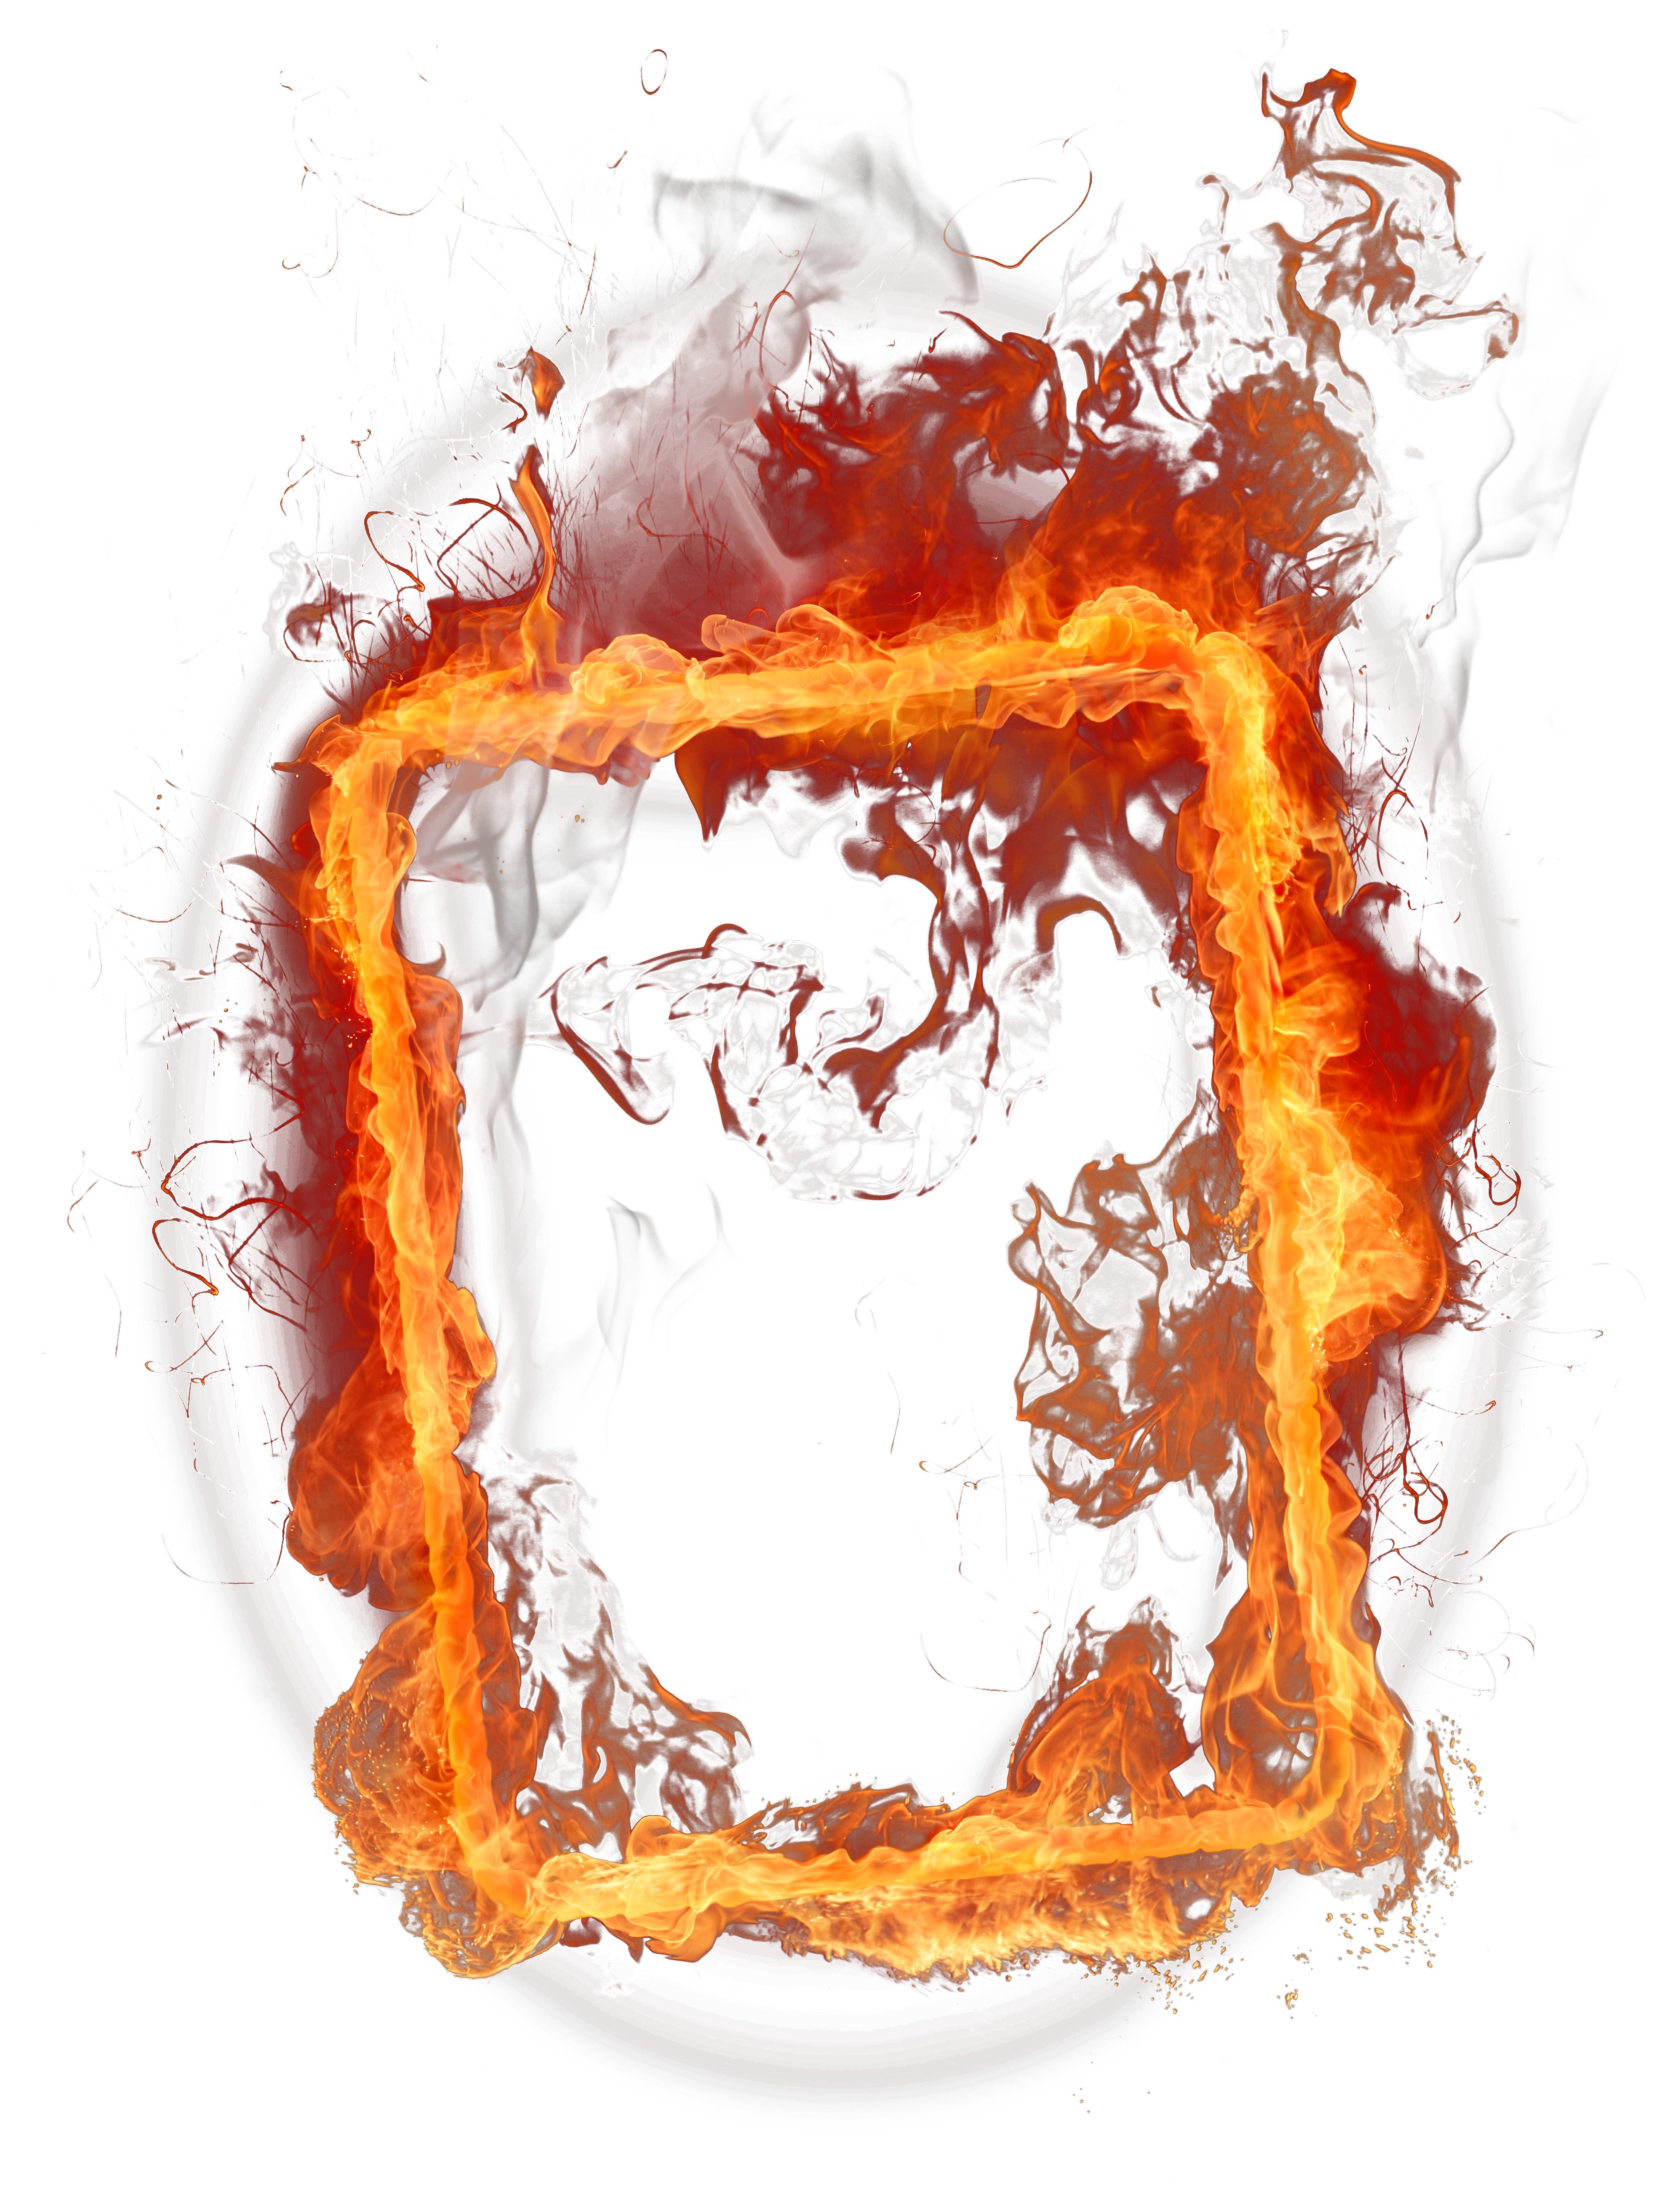 Fire clipart illustration. One isolated stock photo